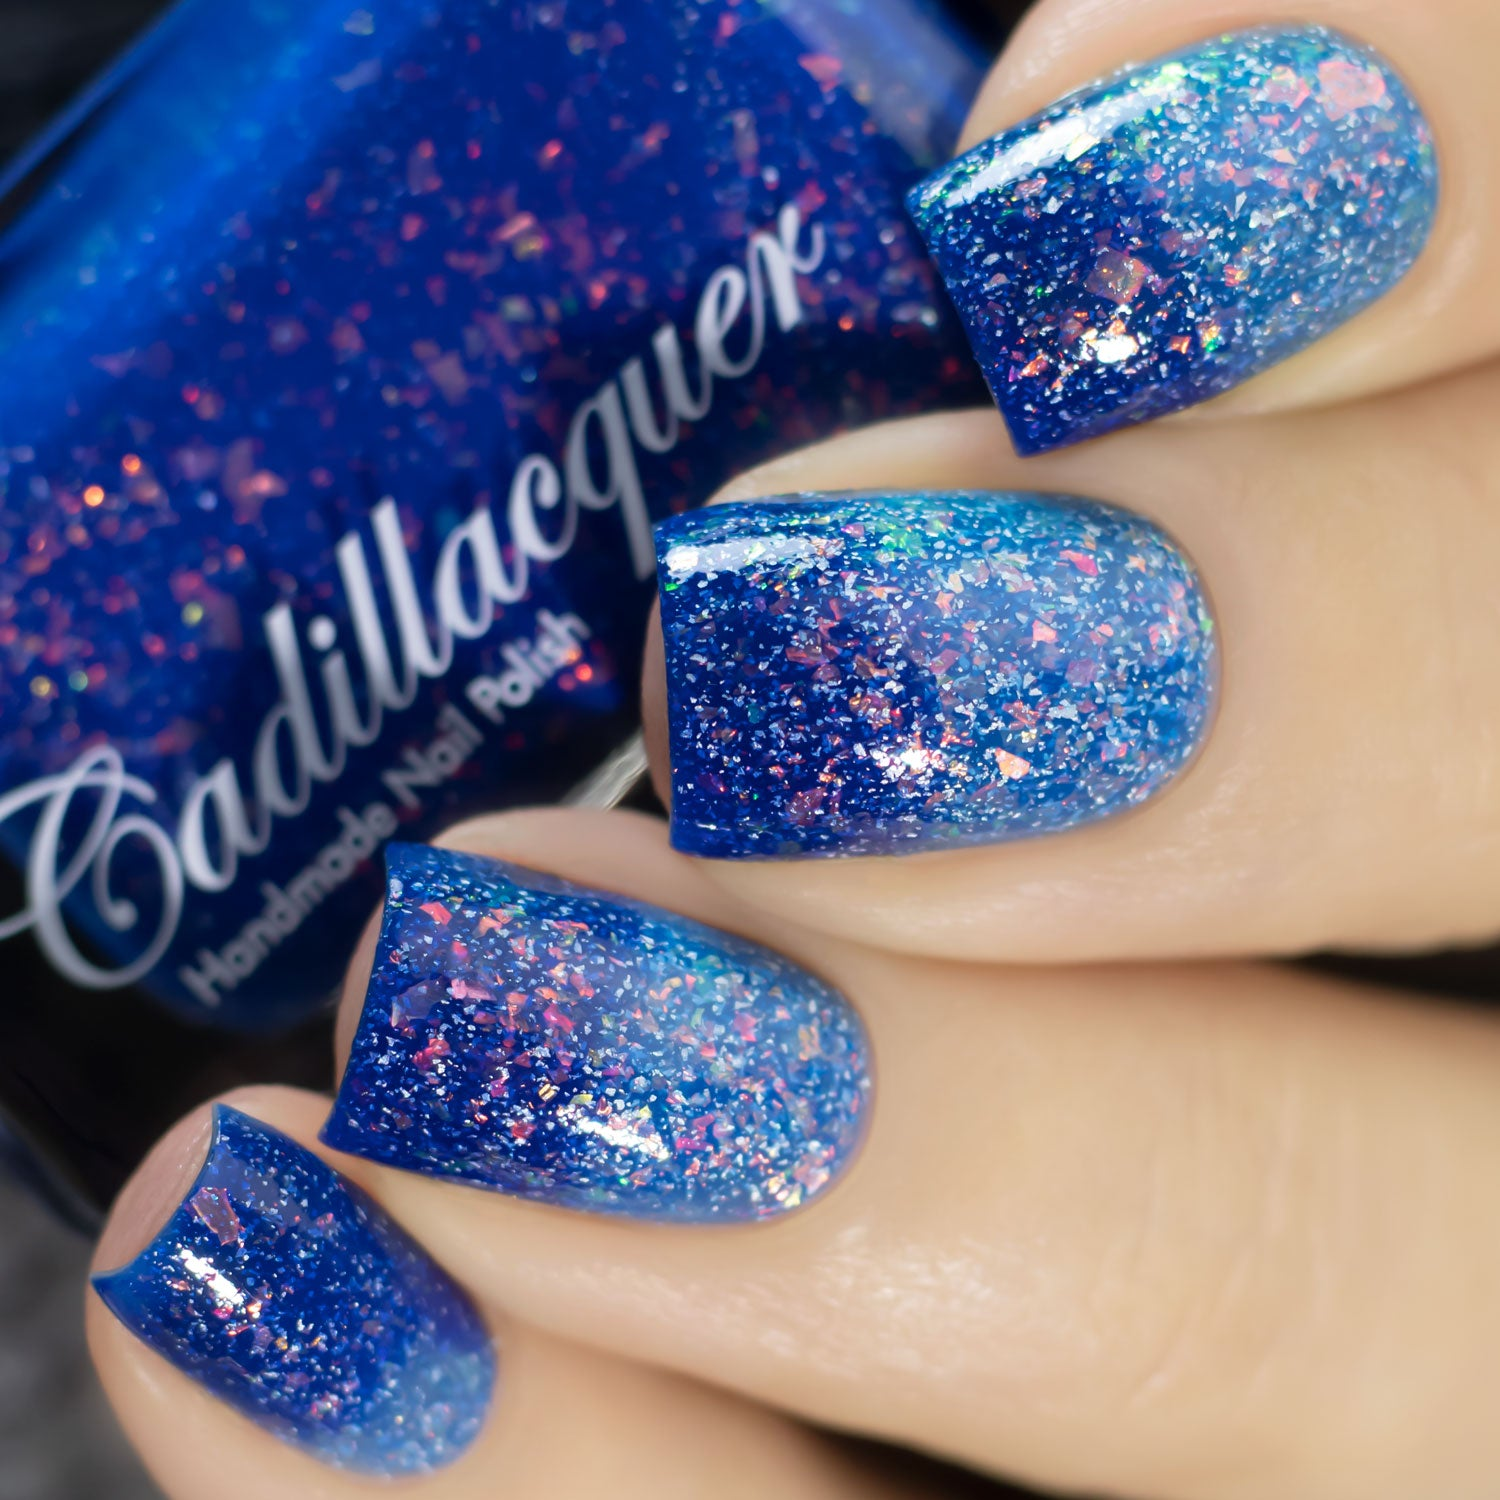 Cadillacquer - Fall 2020 - There Are Things You Can't Forget (Thermal)